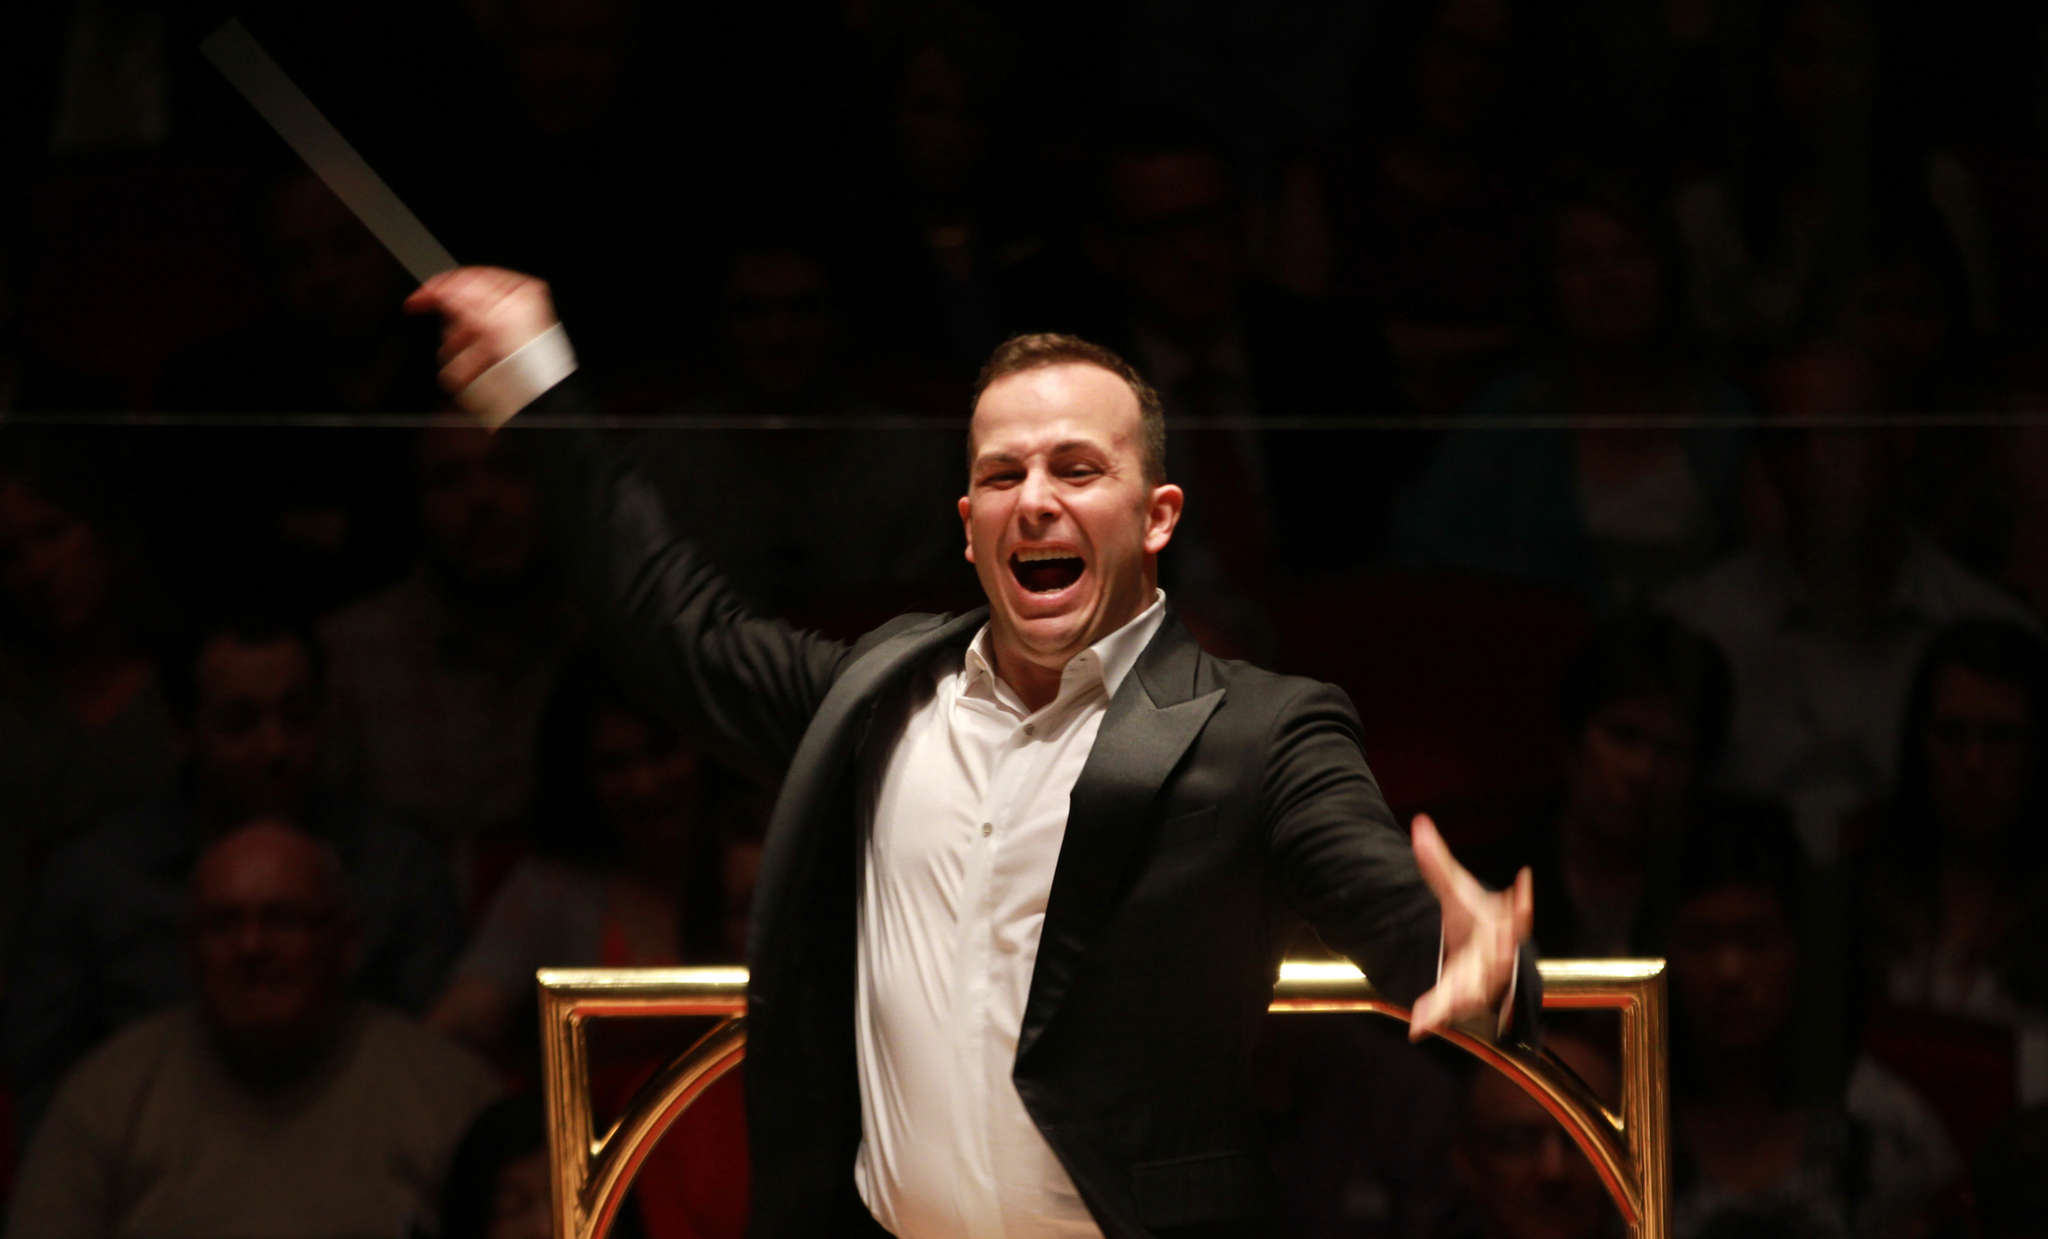 Music director Yannick Nézet-Séguin was paid $519,319 in 2013. In addition to this, the Philadelphia Orchestra paid the IRS $227,950 on his behalf.